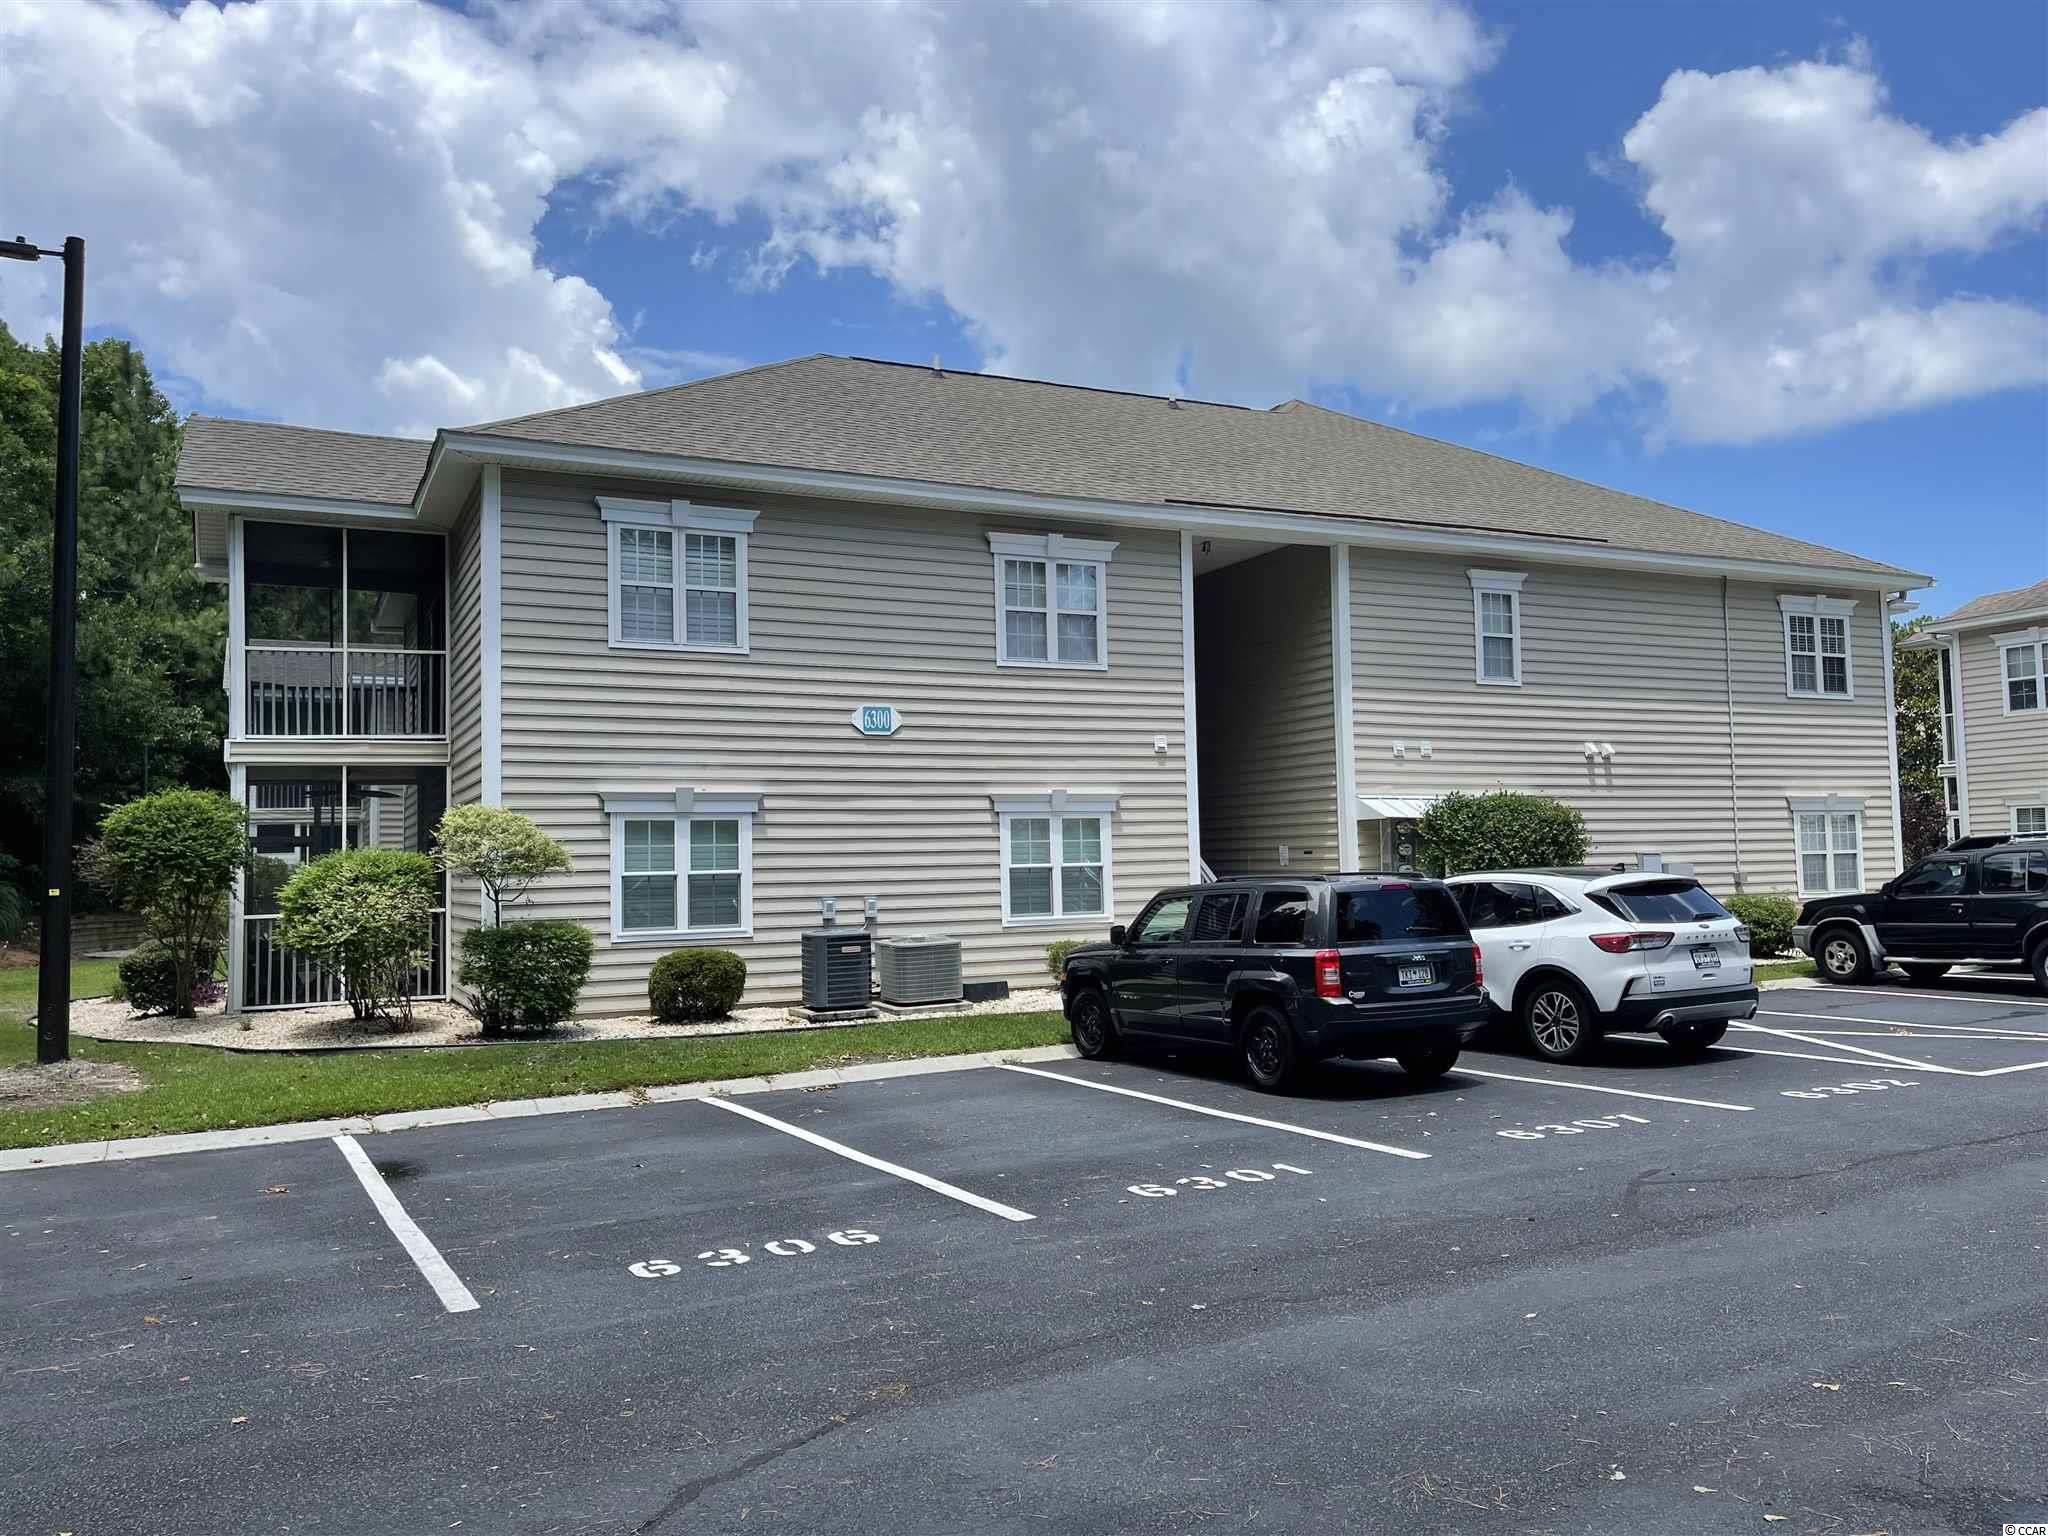 Check out this beautiful 3 bedroom, 2 bath condo in the sought after Sweetwater community in Murrells Inlet. This condo features updated flooring throughout, a split bedroom floor plan and an open kitchen, living and dining room concept. The spacious screened in porch overlooks the pool area. The convenient location is close to shopping, dining, the beach and the very popular Murrells Inlet Marshwalk!